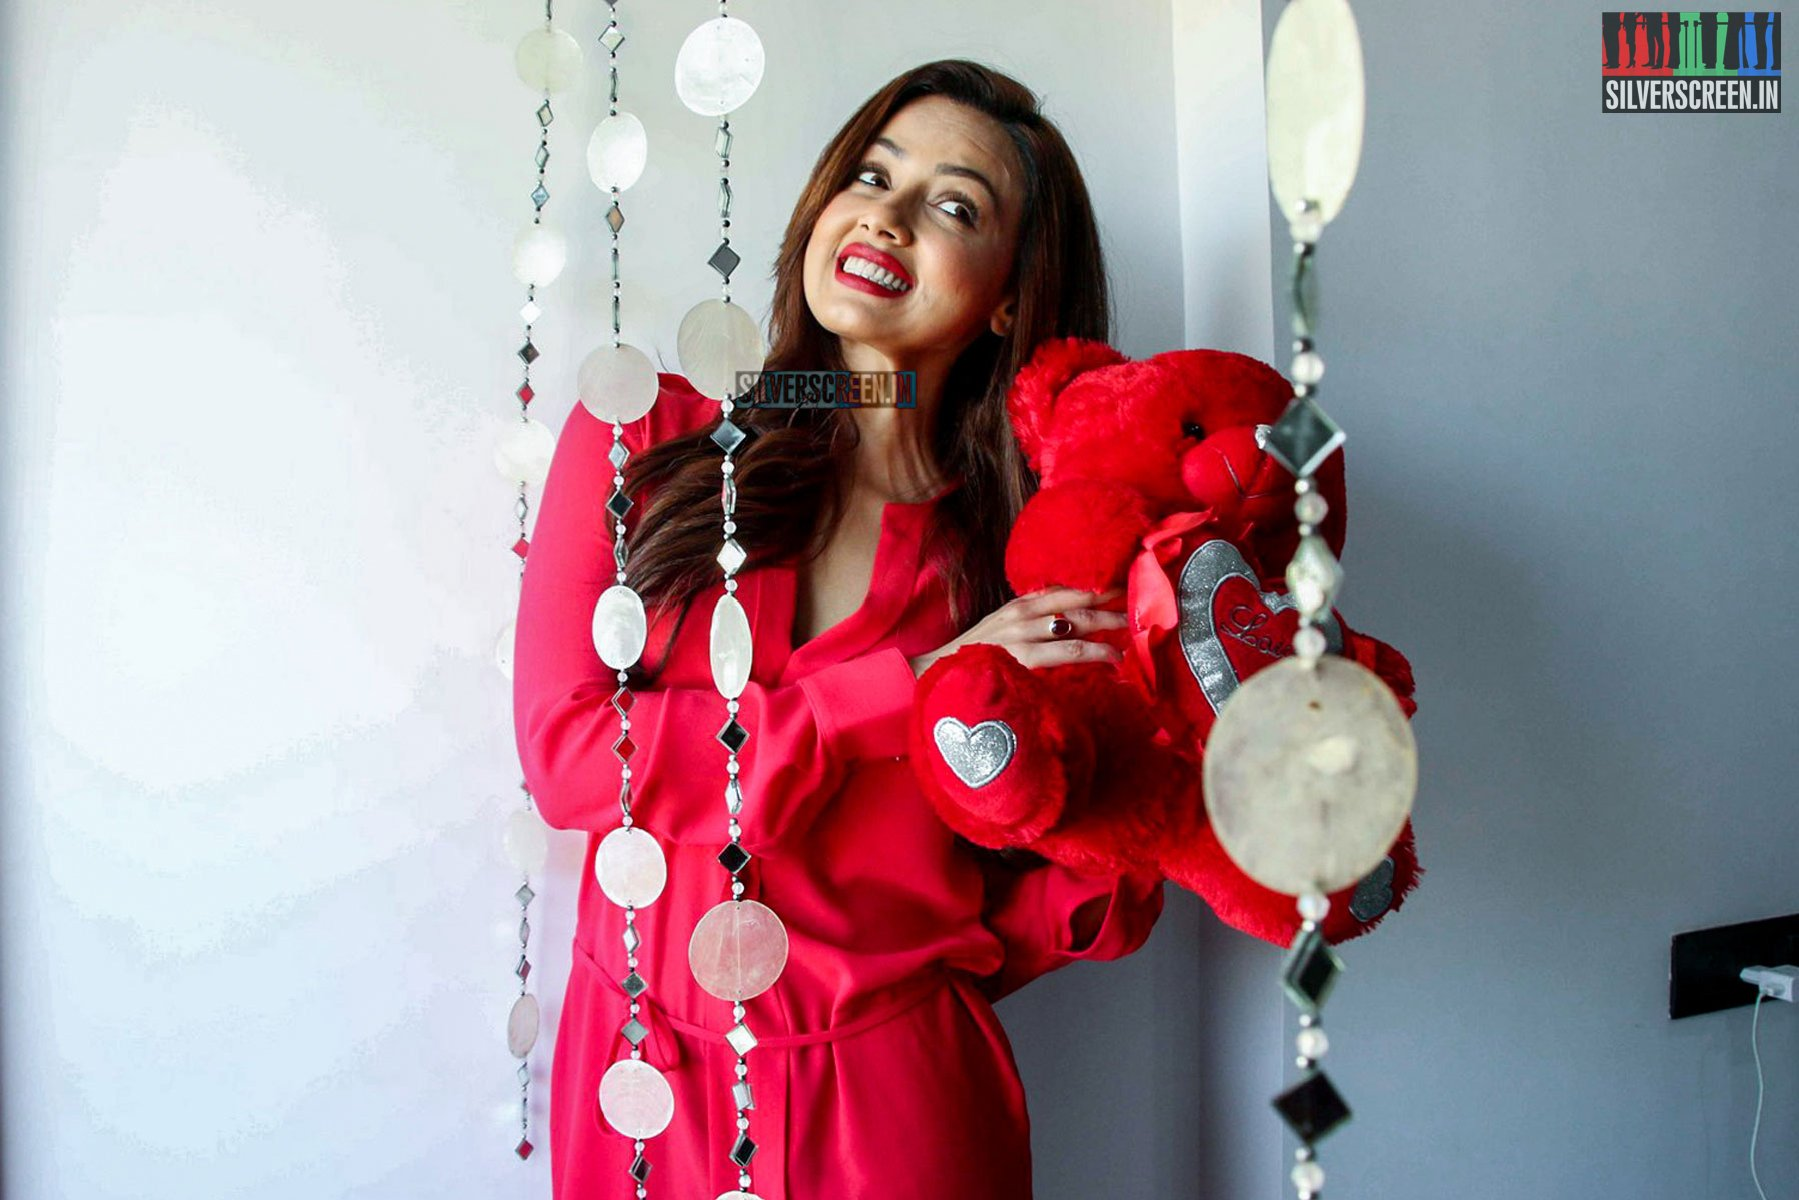 Sana Khan S Valentine Day Photoshoot Stills Silverscreen In